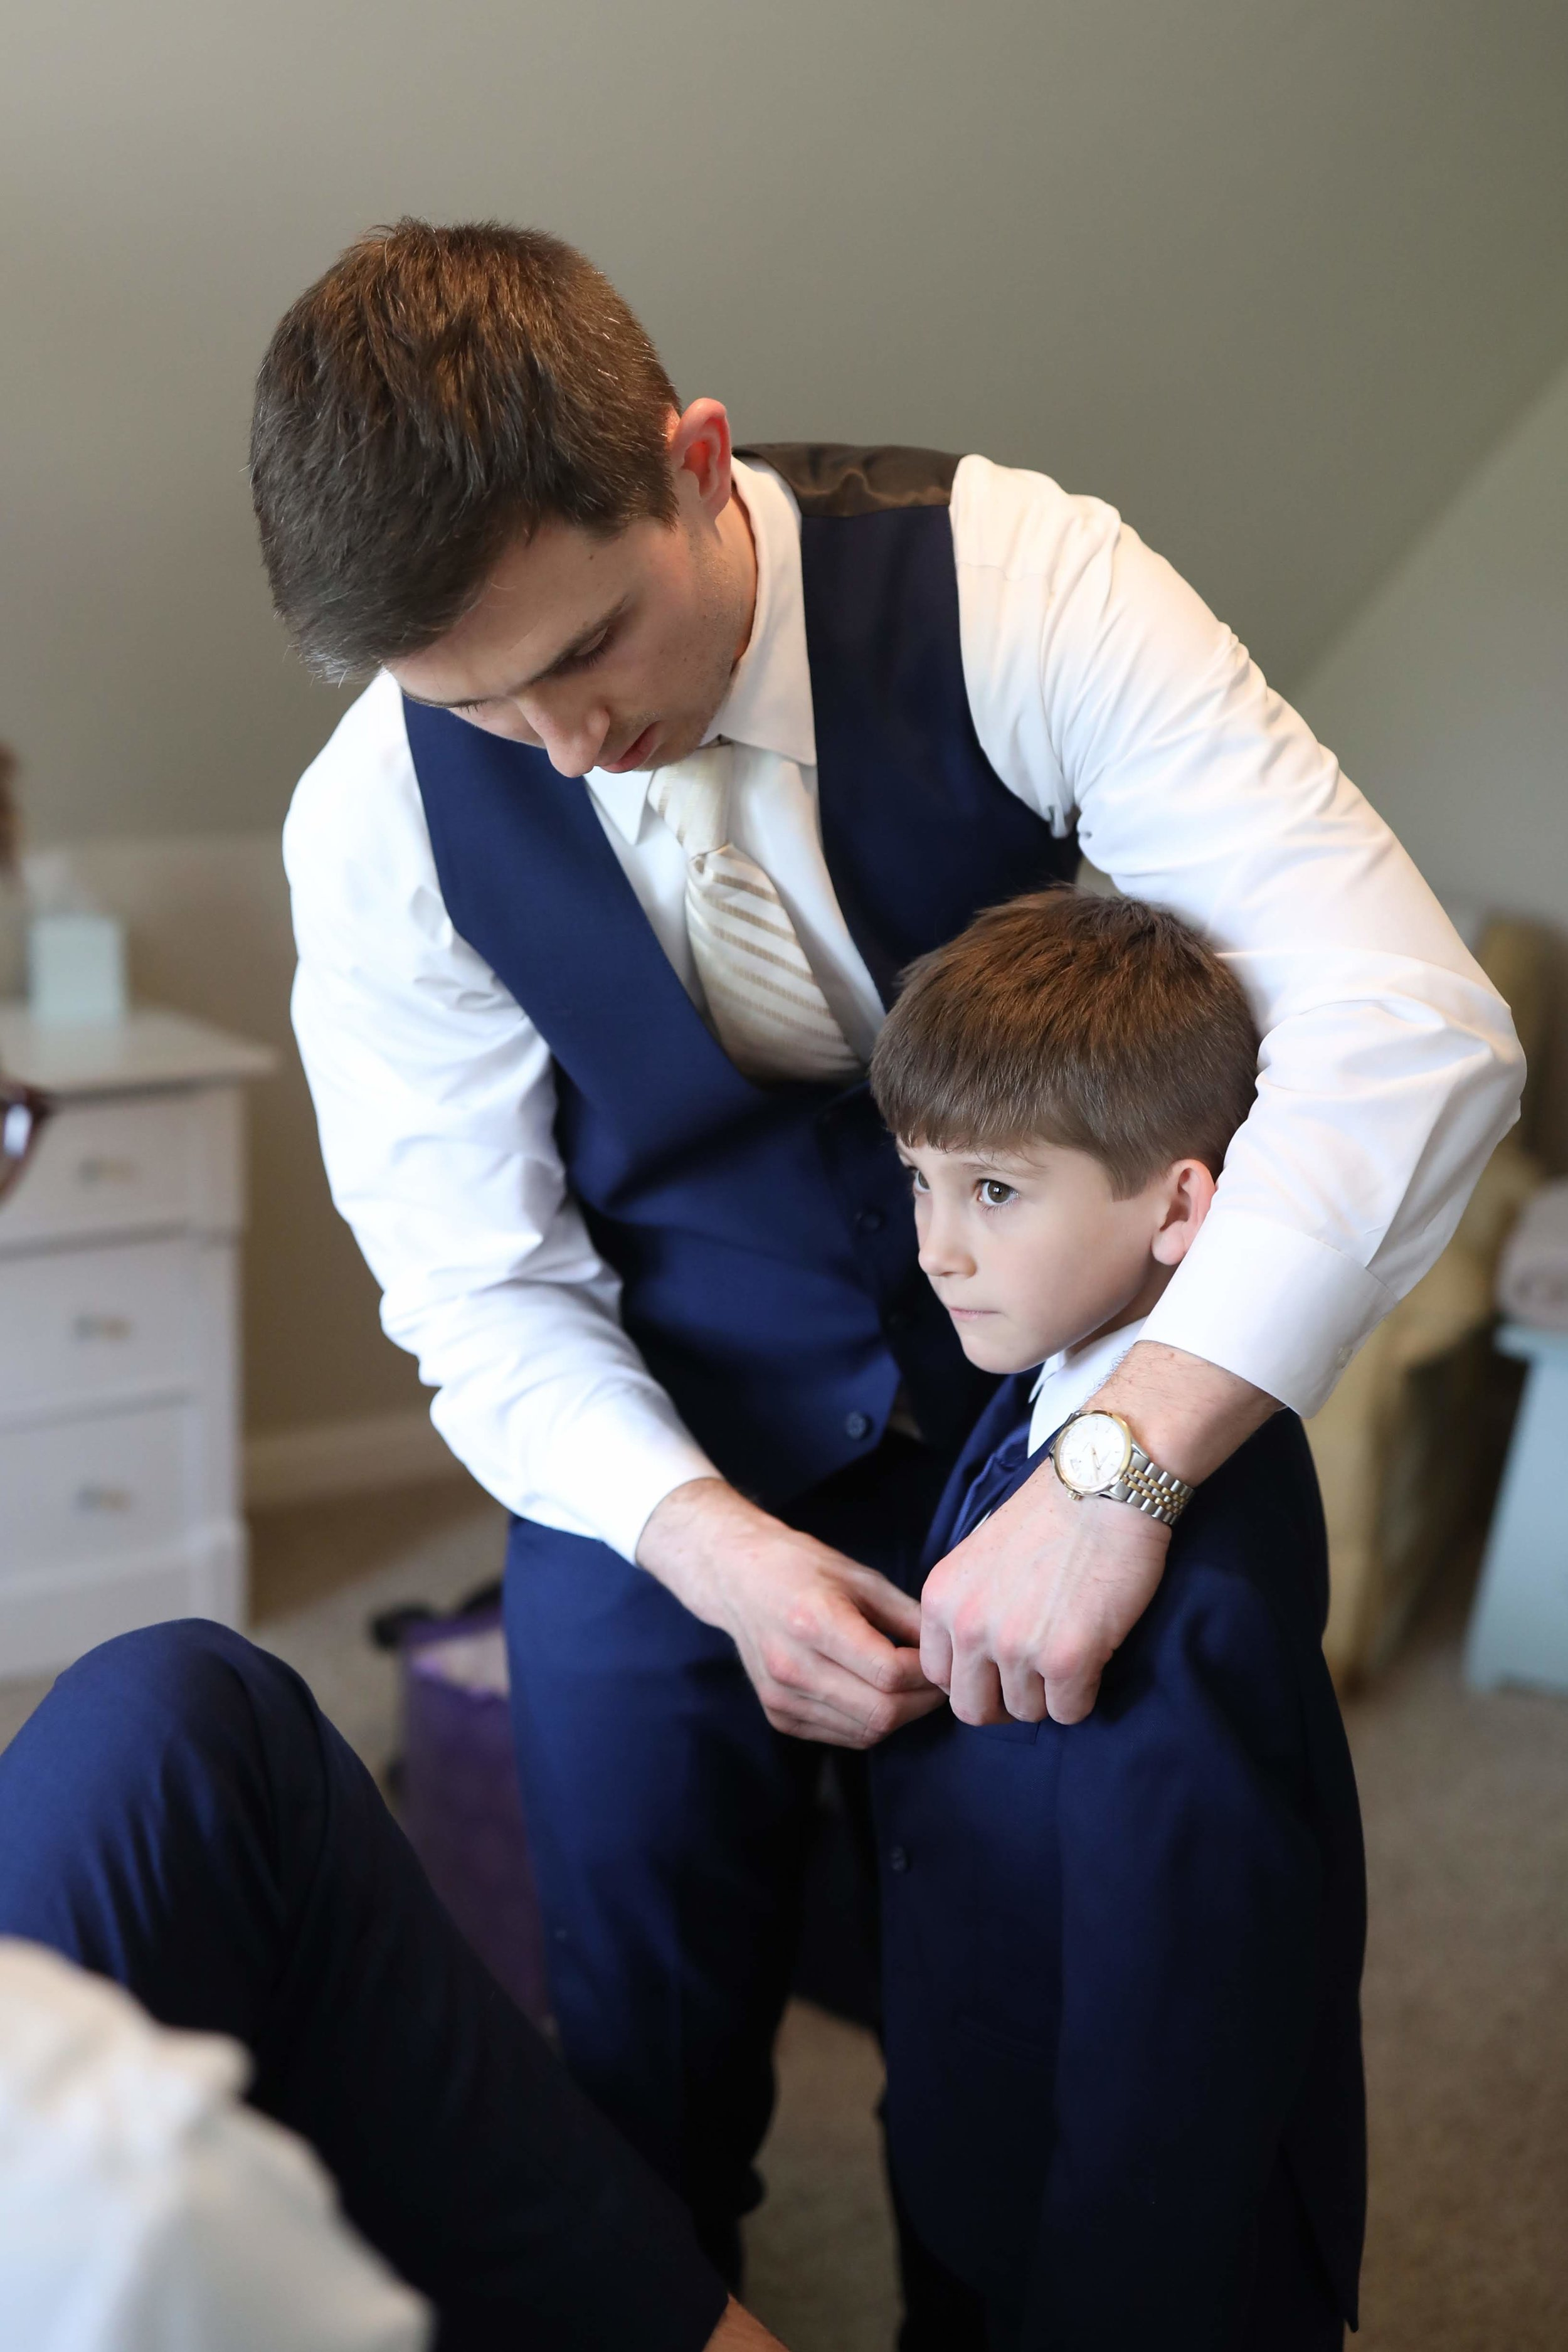 Henry helping their son, Easton, get ready for the big day.